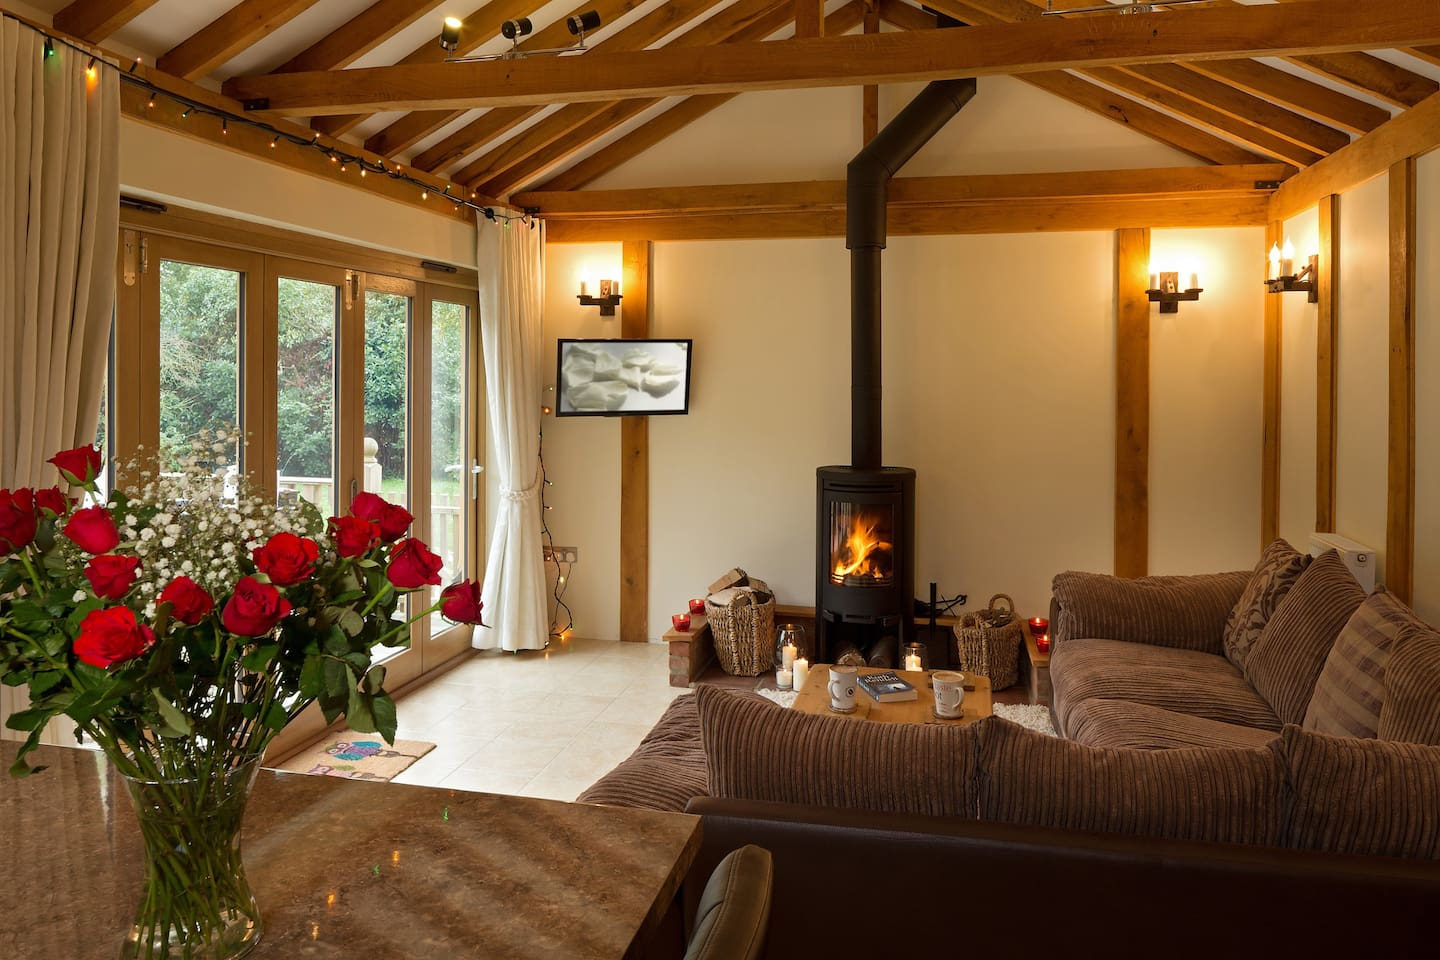 Owl's Hoot lounge with vaulted ceiling and exposed beams.